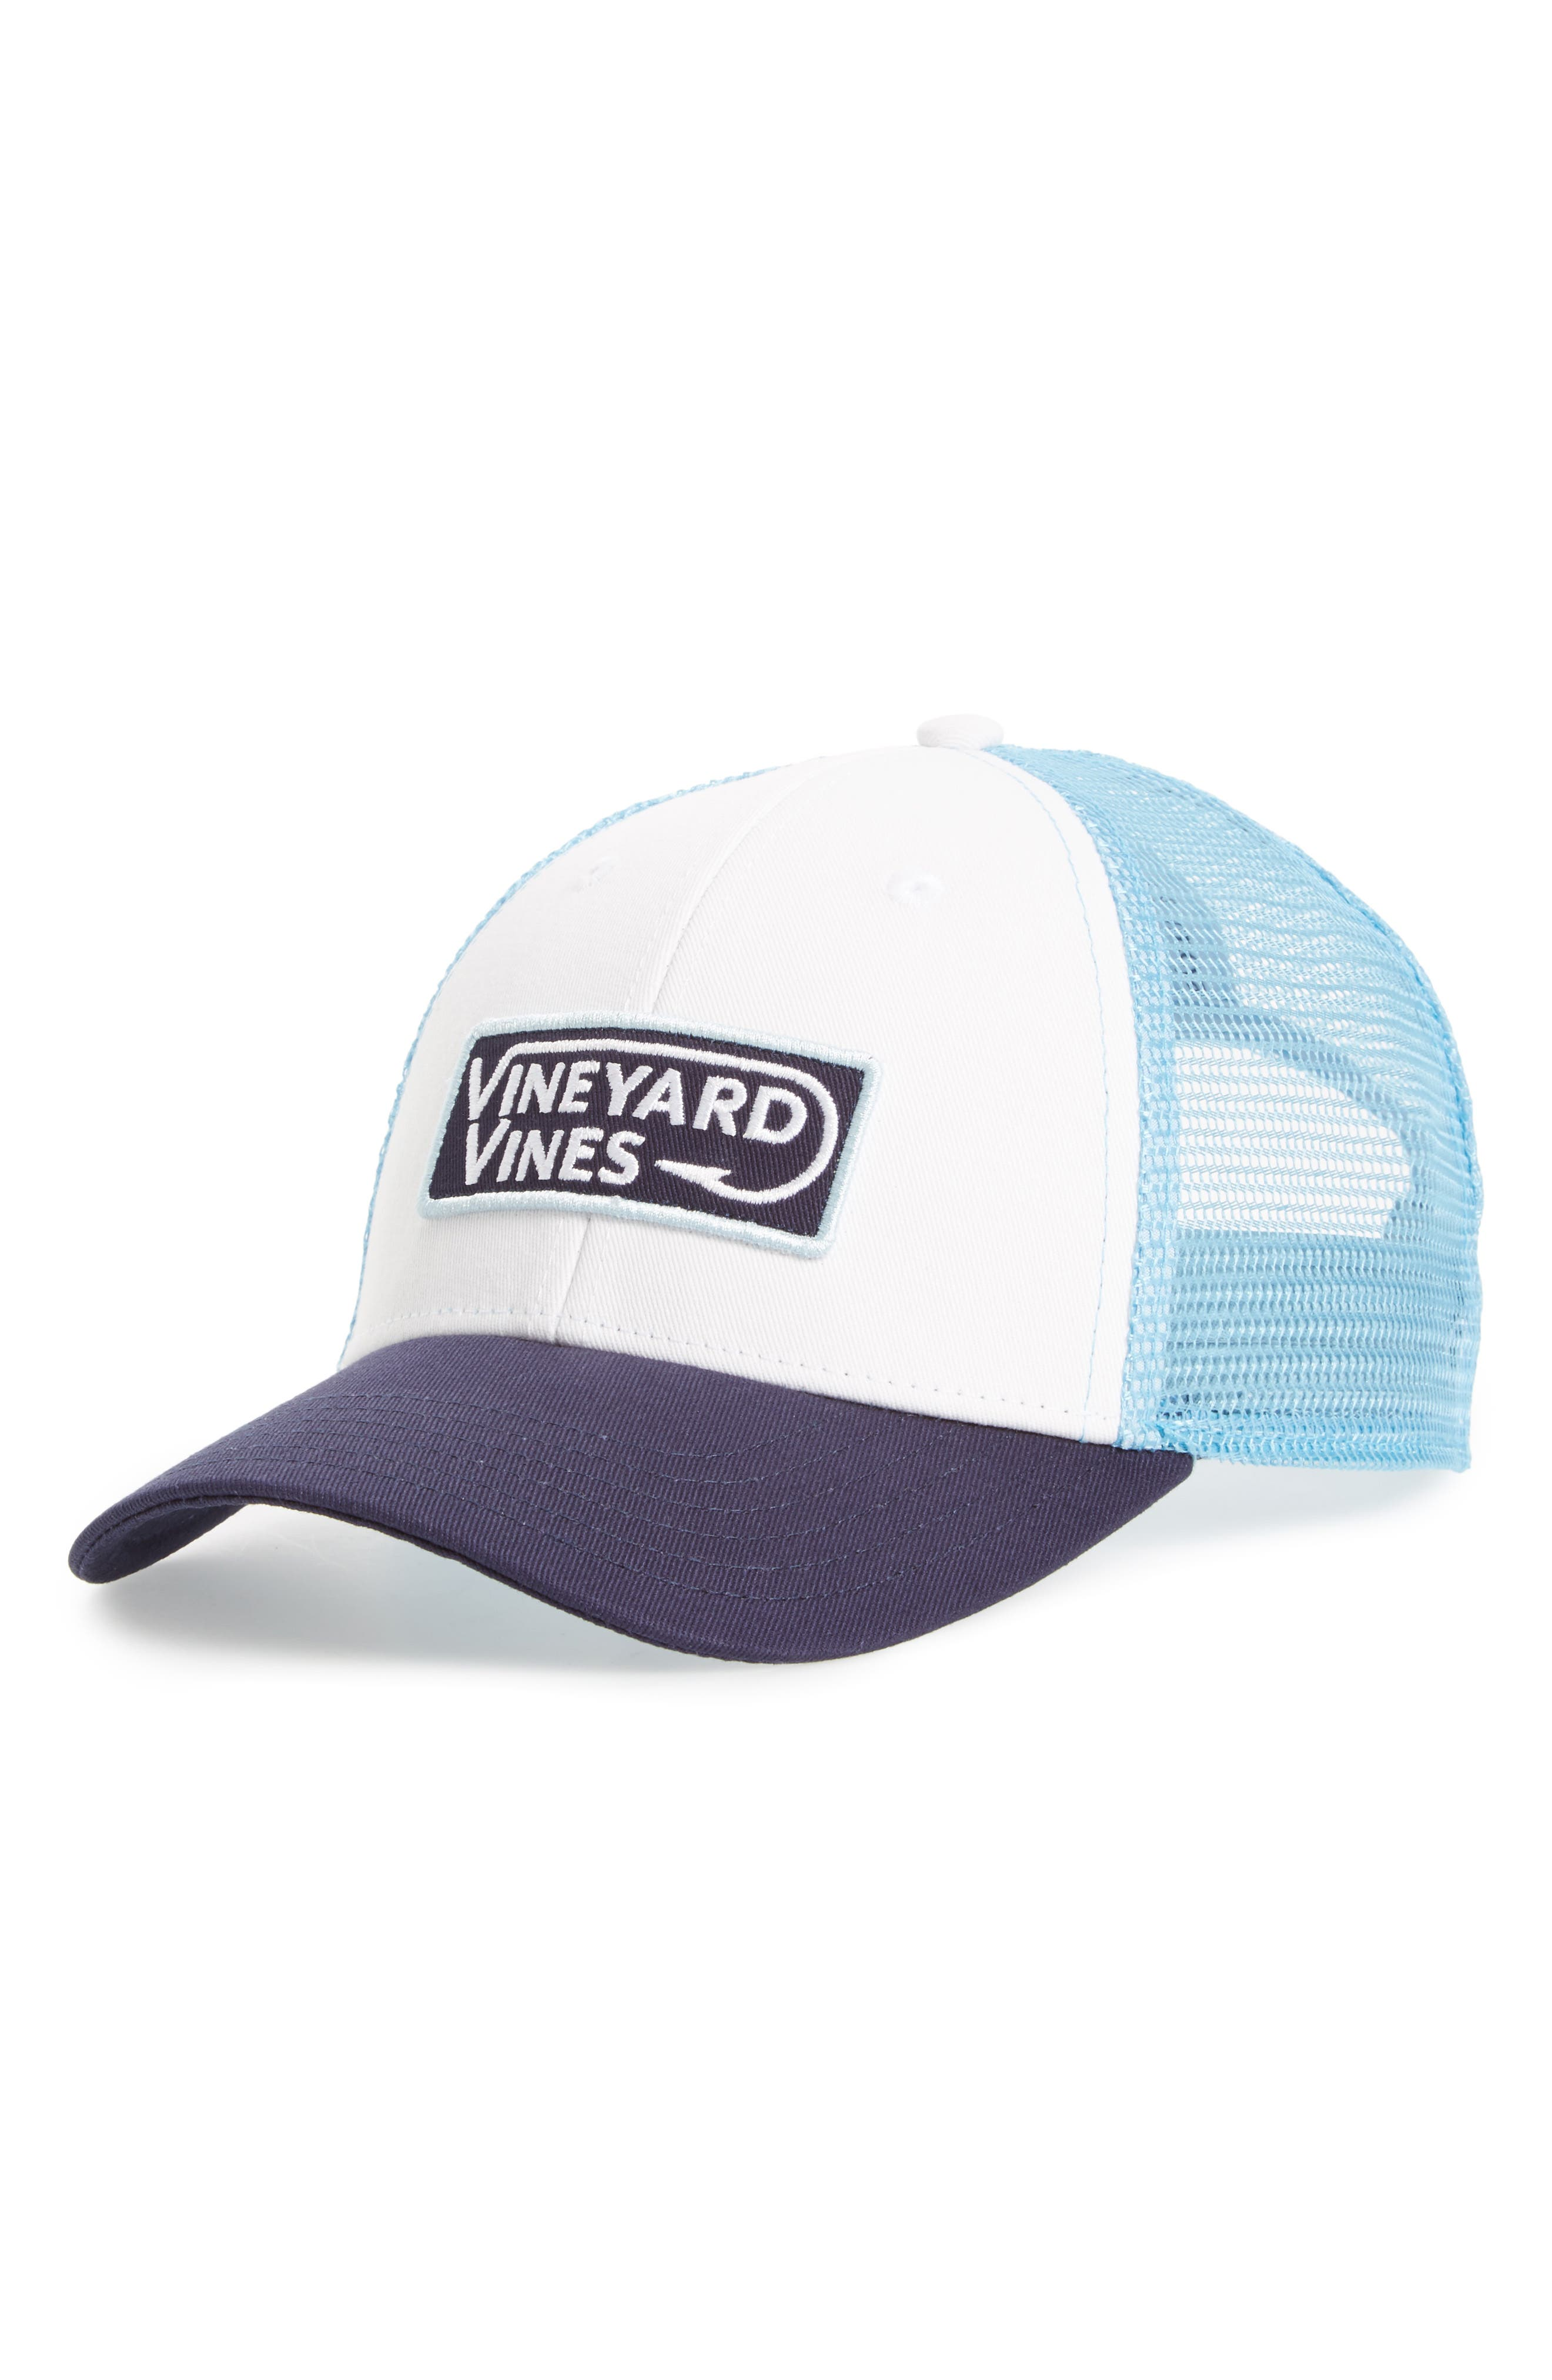 Vineyard Vines Hook Patch Trucker Cap